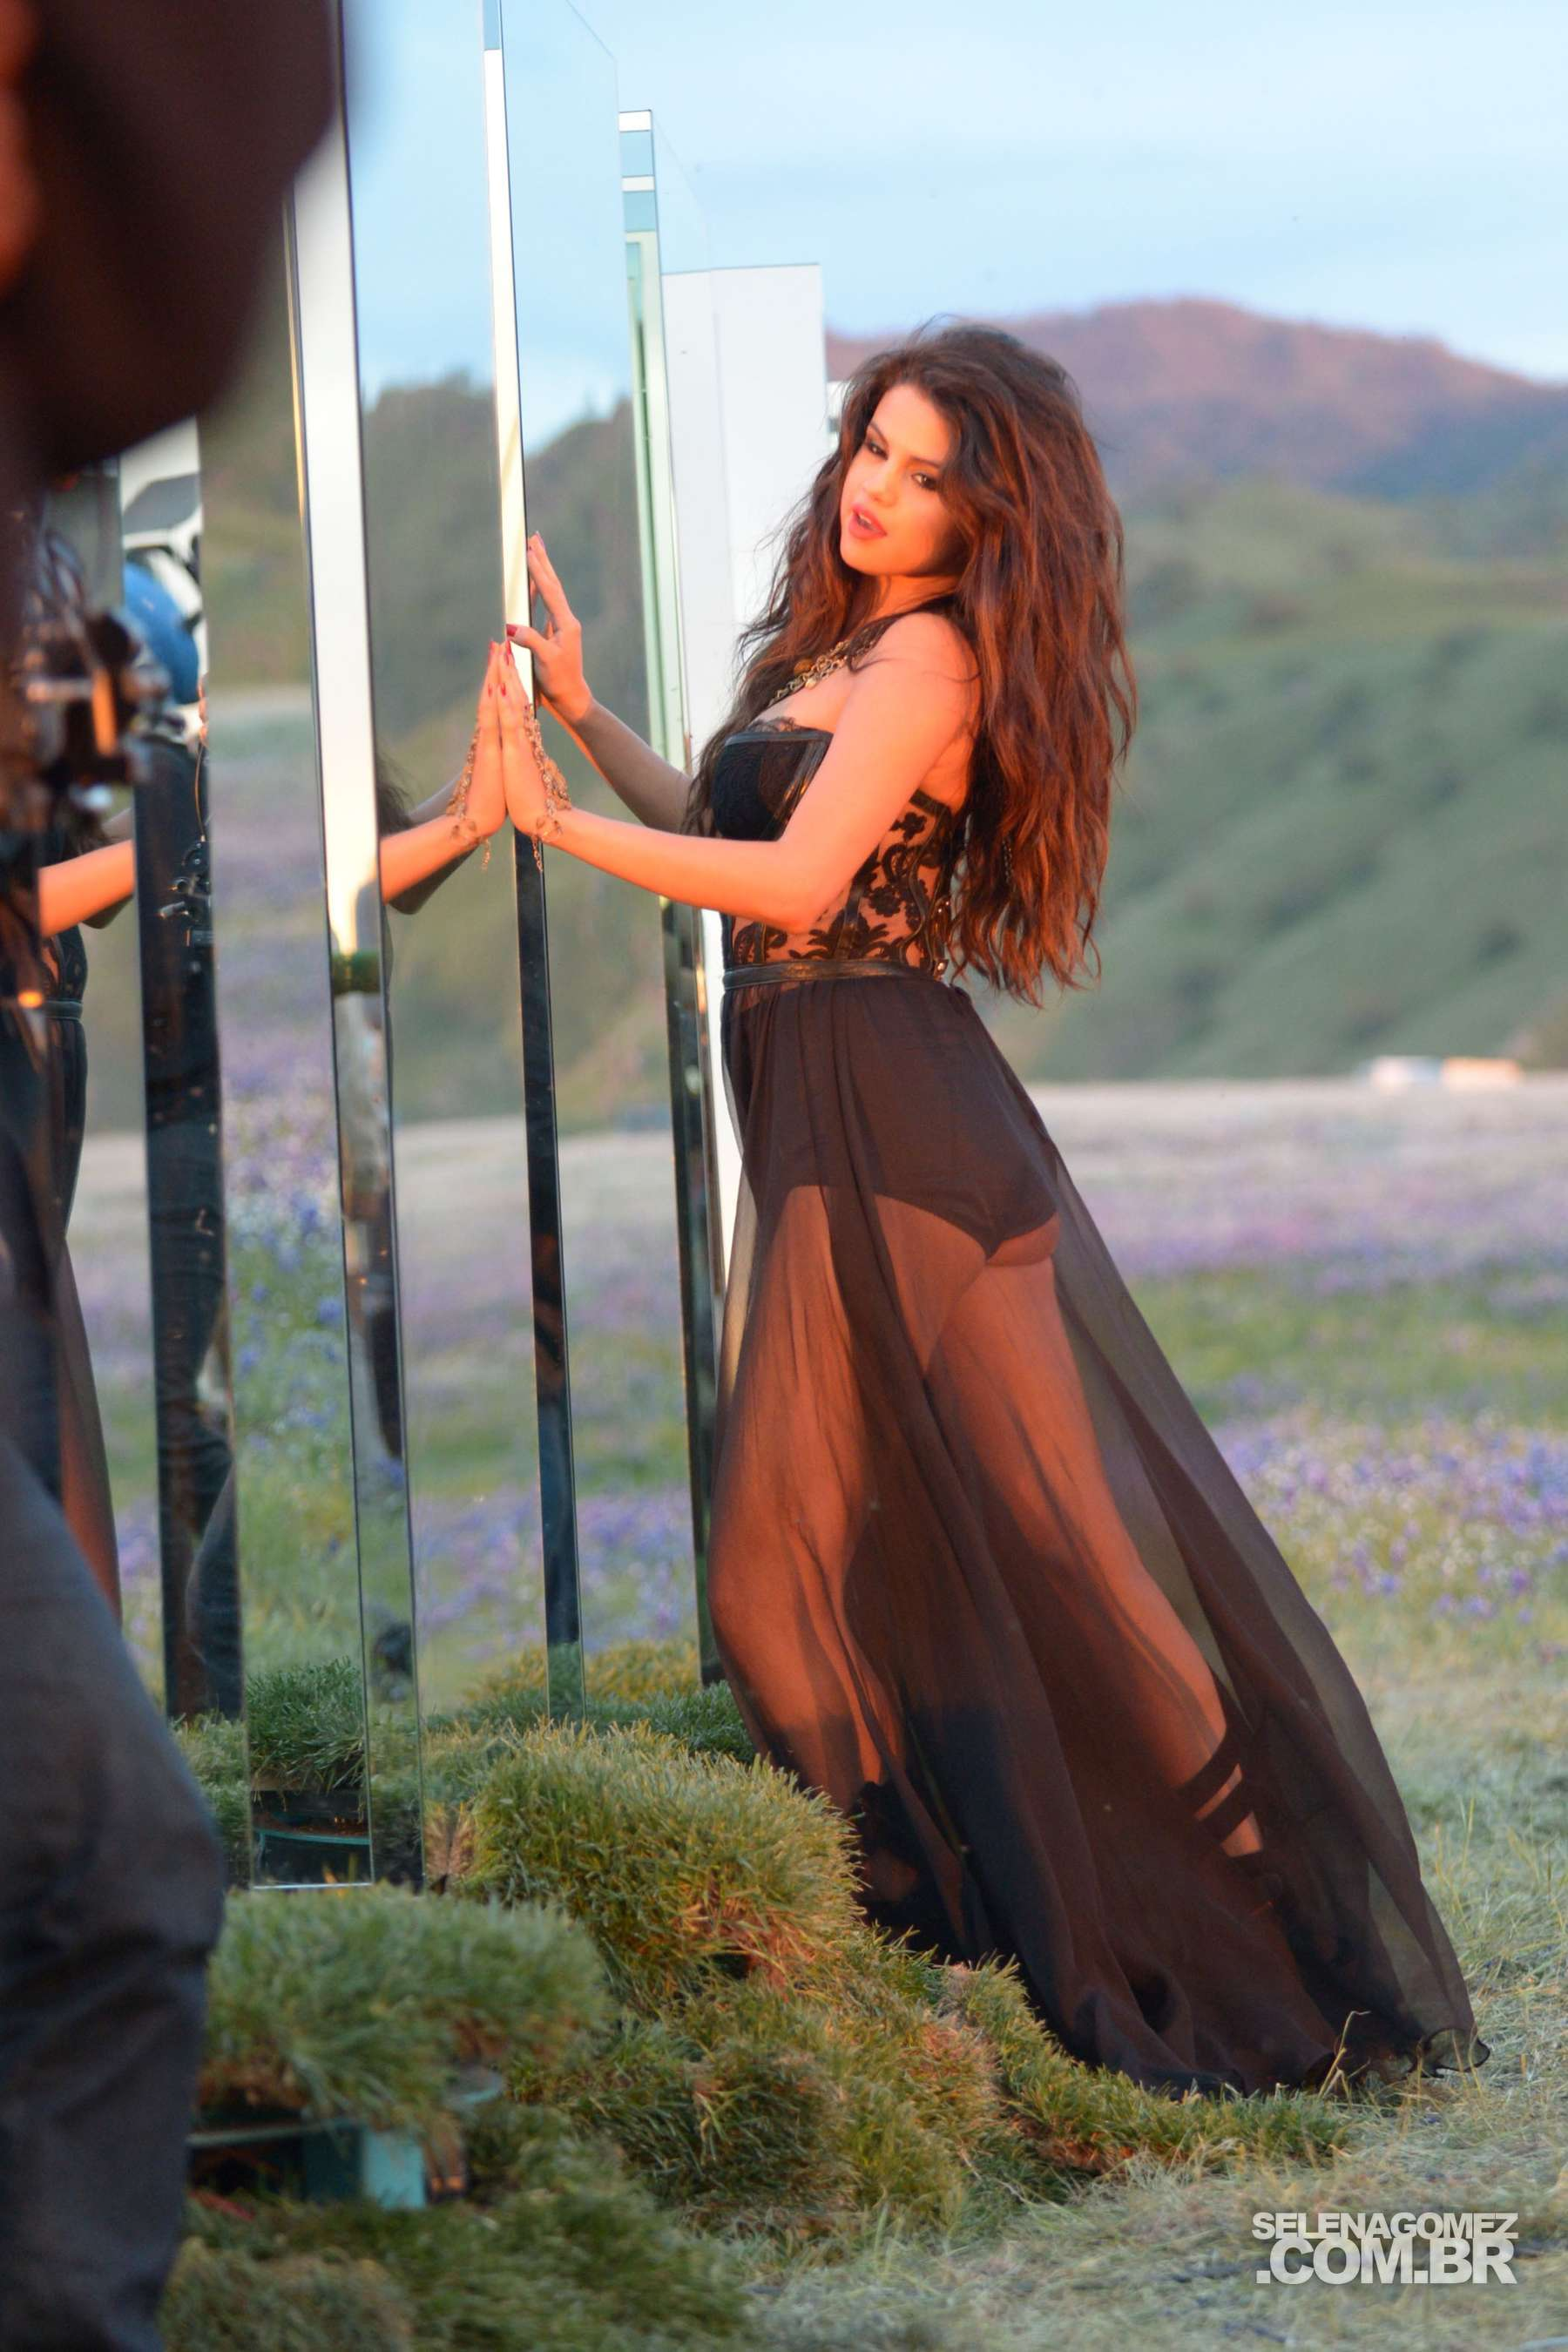 Come And Get It PhotoShot And Backstage -28